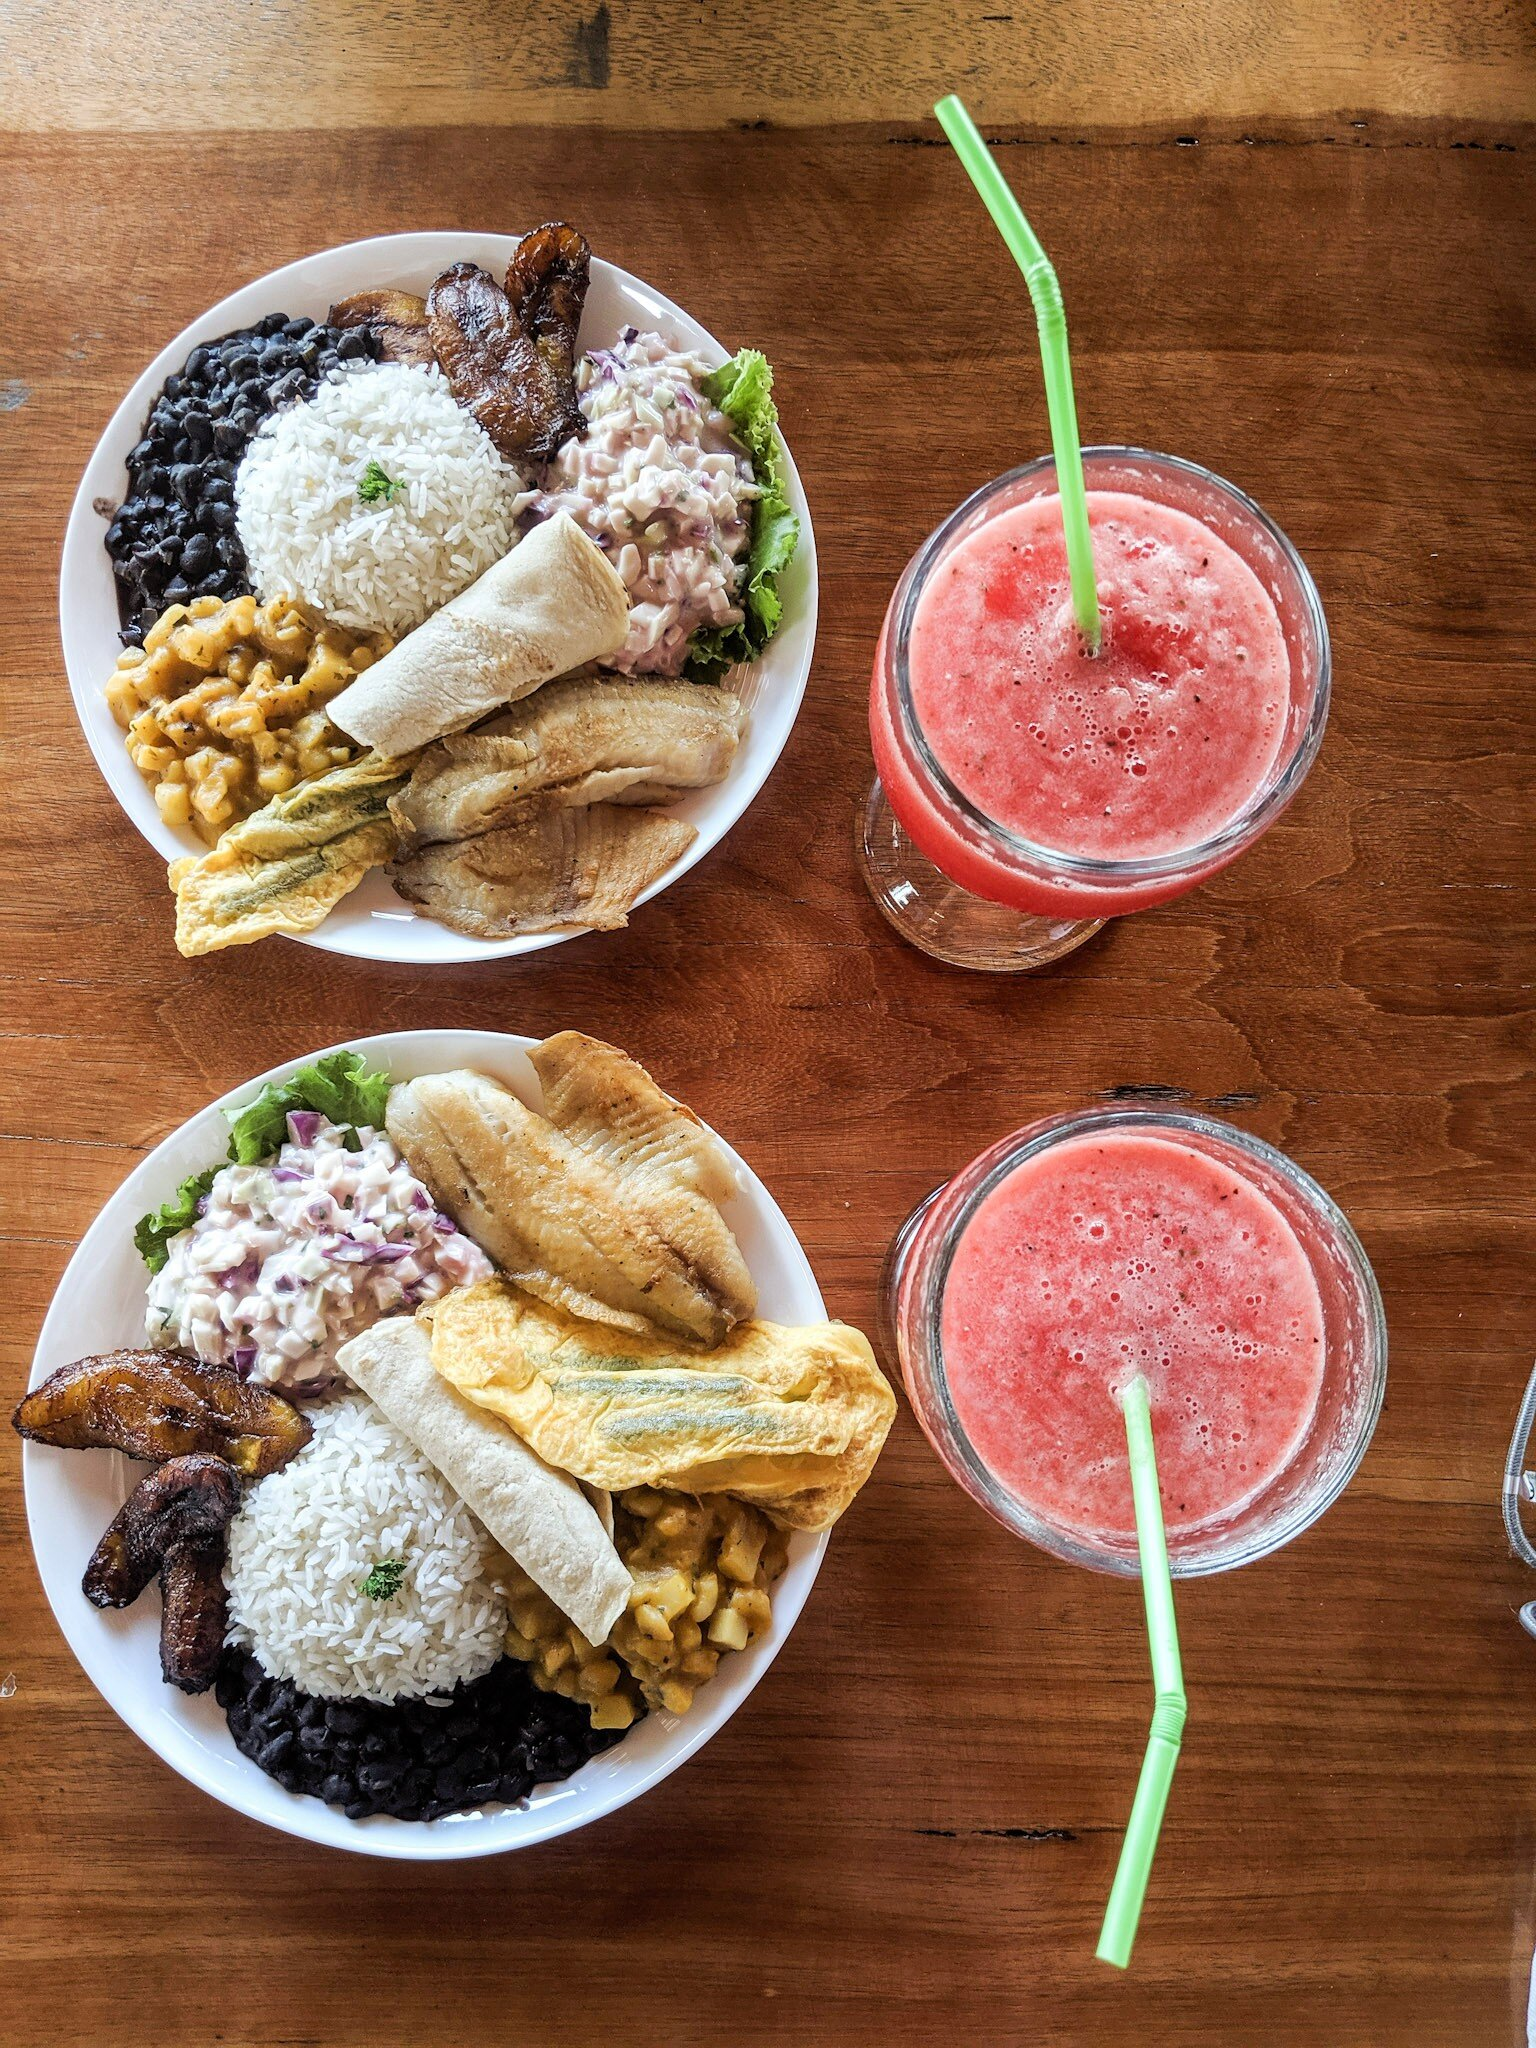 Casado is a Costa Rican dish with osta Rican meal using rice, black beans, plantains, salad, a tortilla, and either chicken, beef, pork, fish.